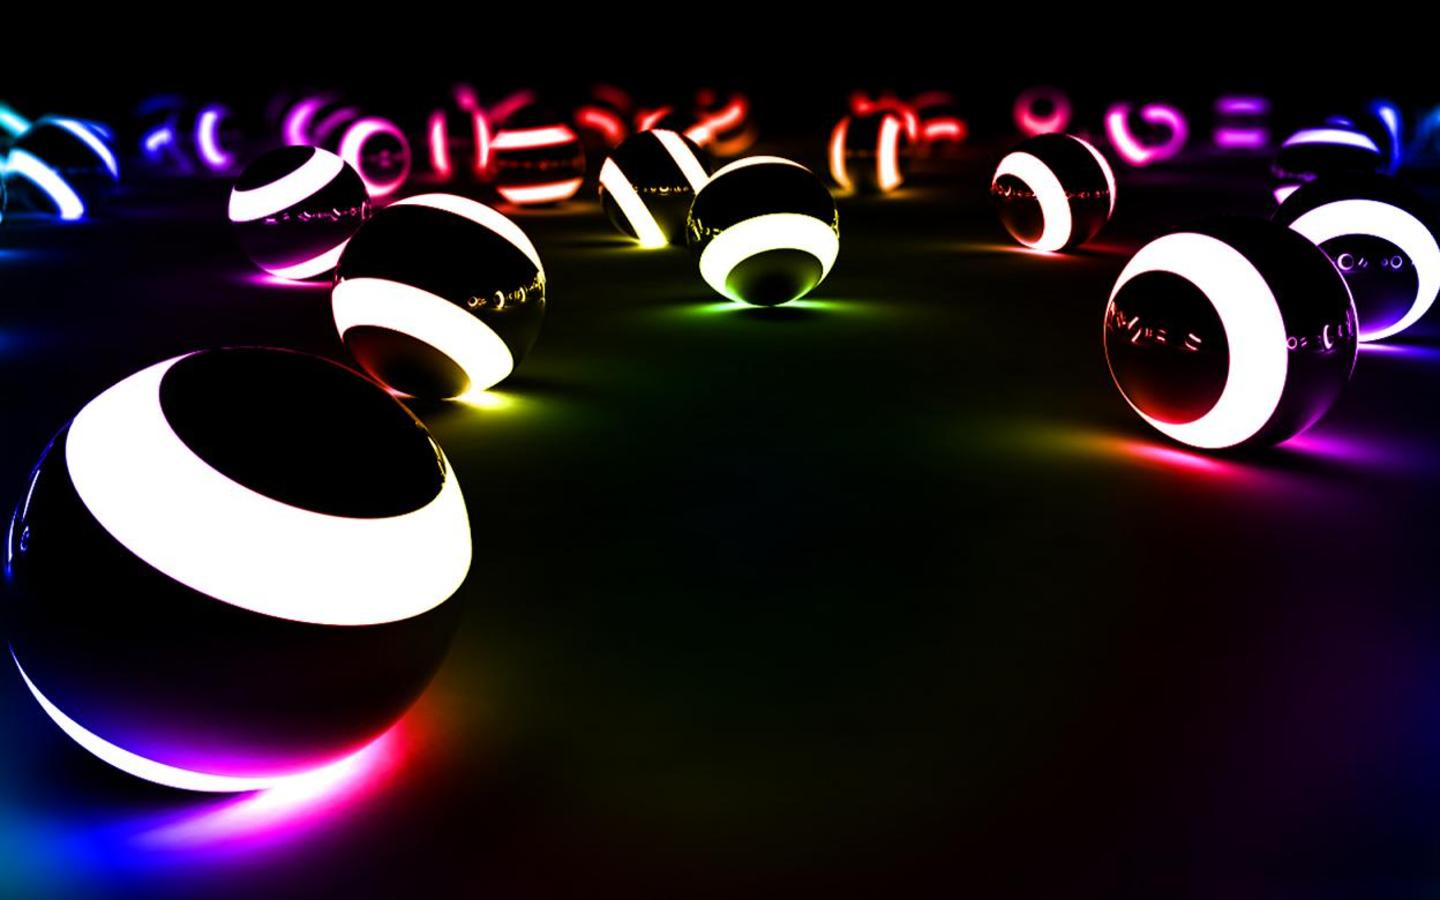 Amazing Neon Wallpaper 6949